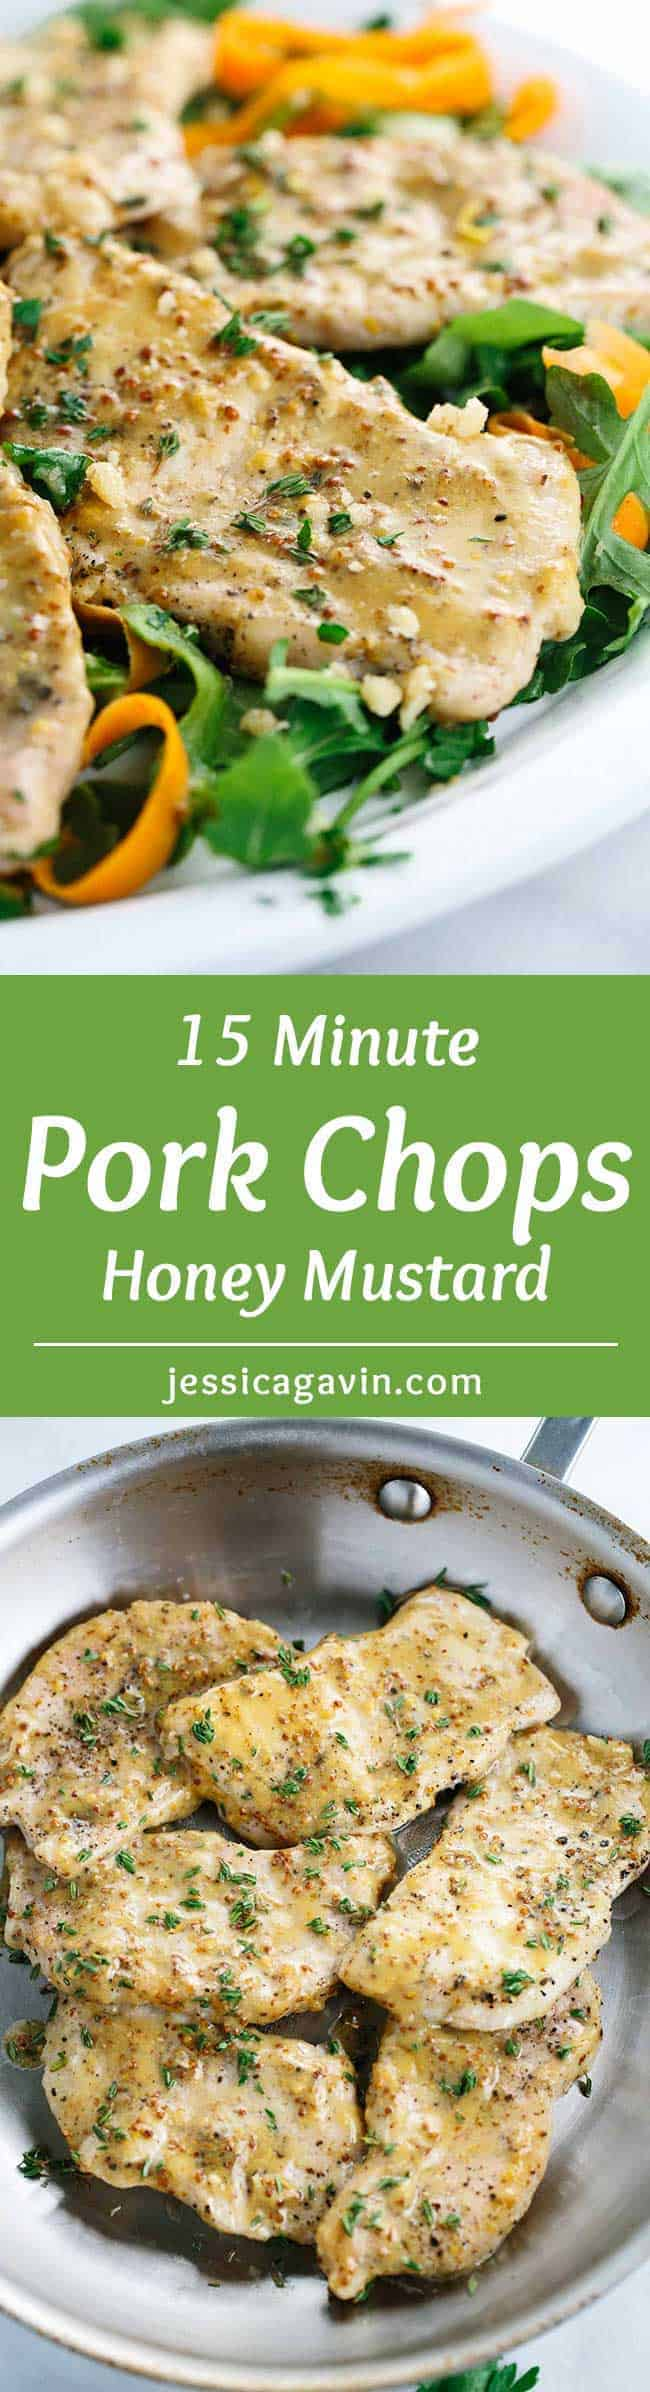 15 Minute Honey Mustard Pork Chops - In a rush for dinner? Here\'s a quick recipe for sauteed lean pork glazed with a tangy and sweet mustard sauce.